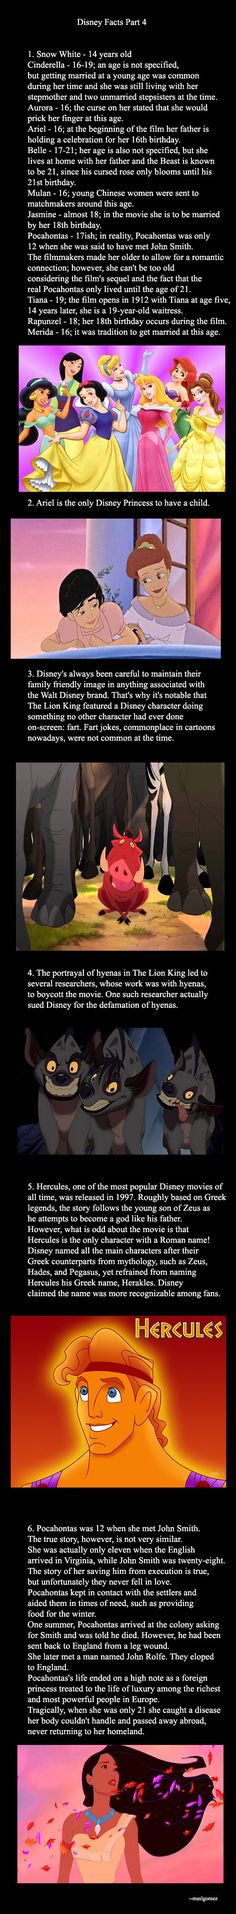 Disney Facts Part 4 (The last fact :That makes more since with the second movie, sucks that she dies at a young age though)